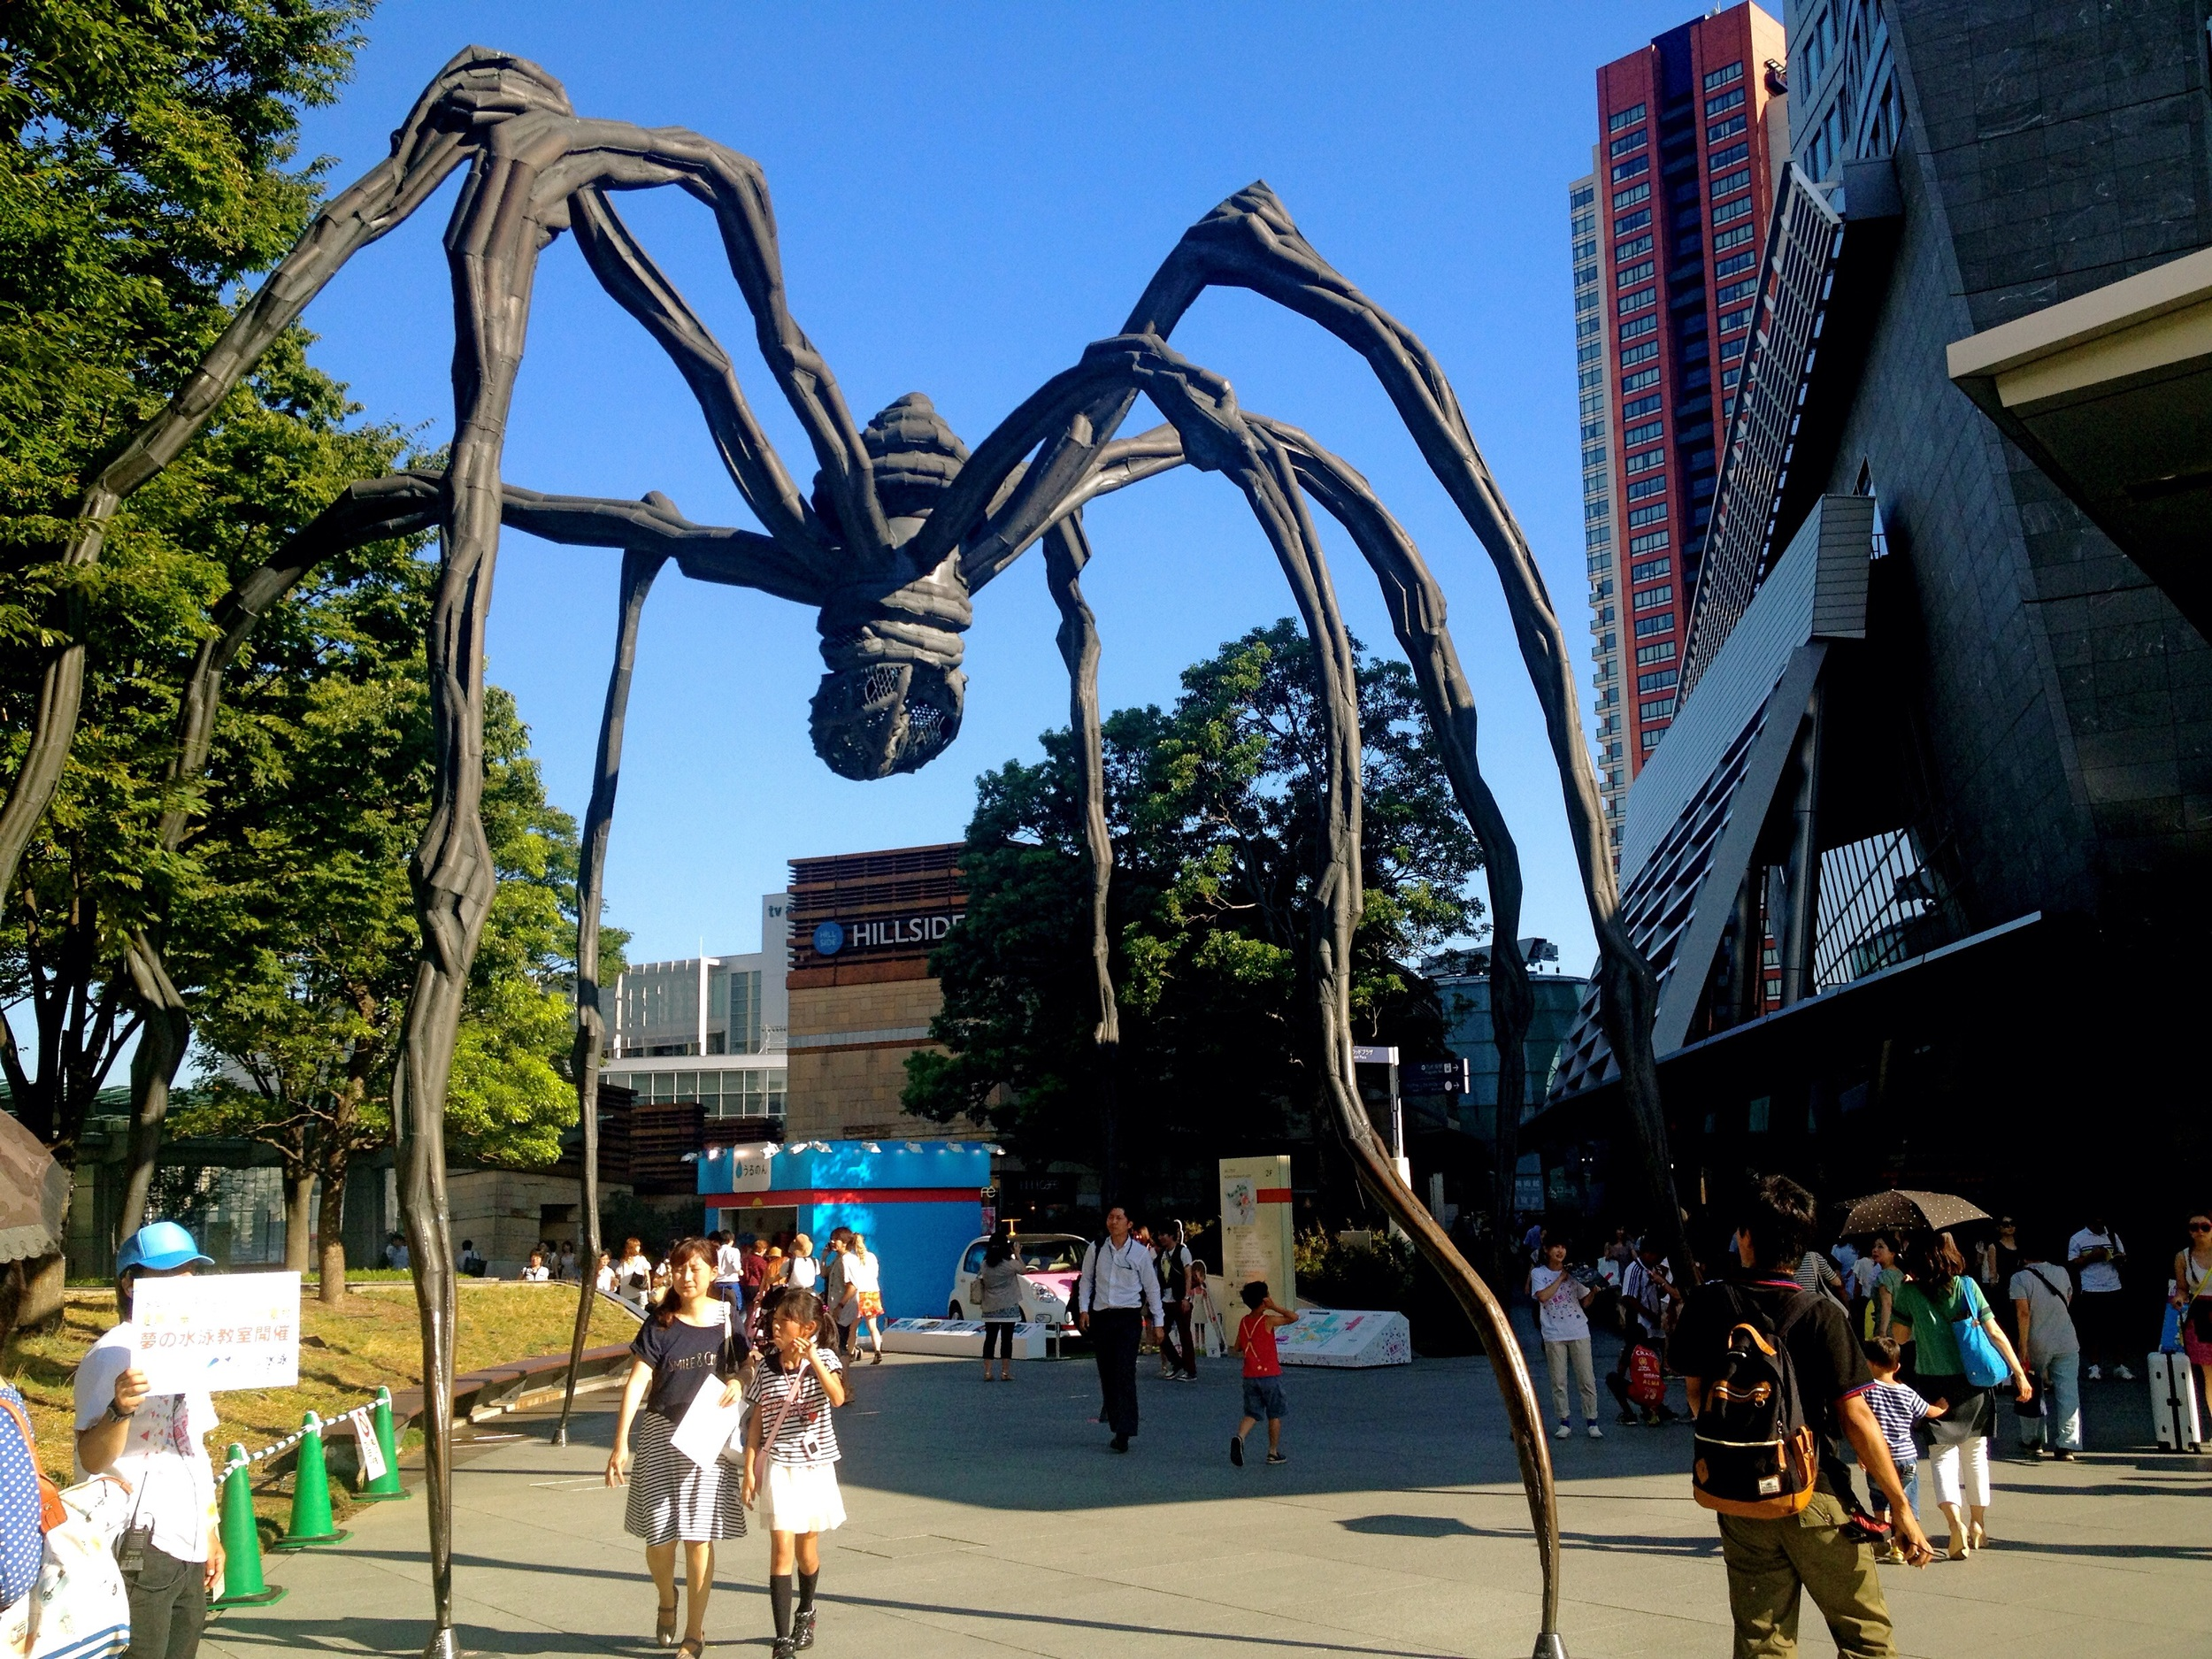 ' Maman' giant spider sculpture   - To make Aussie models feel right at home